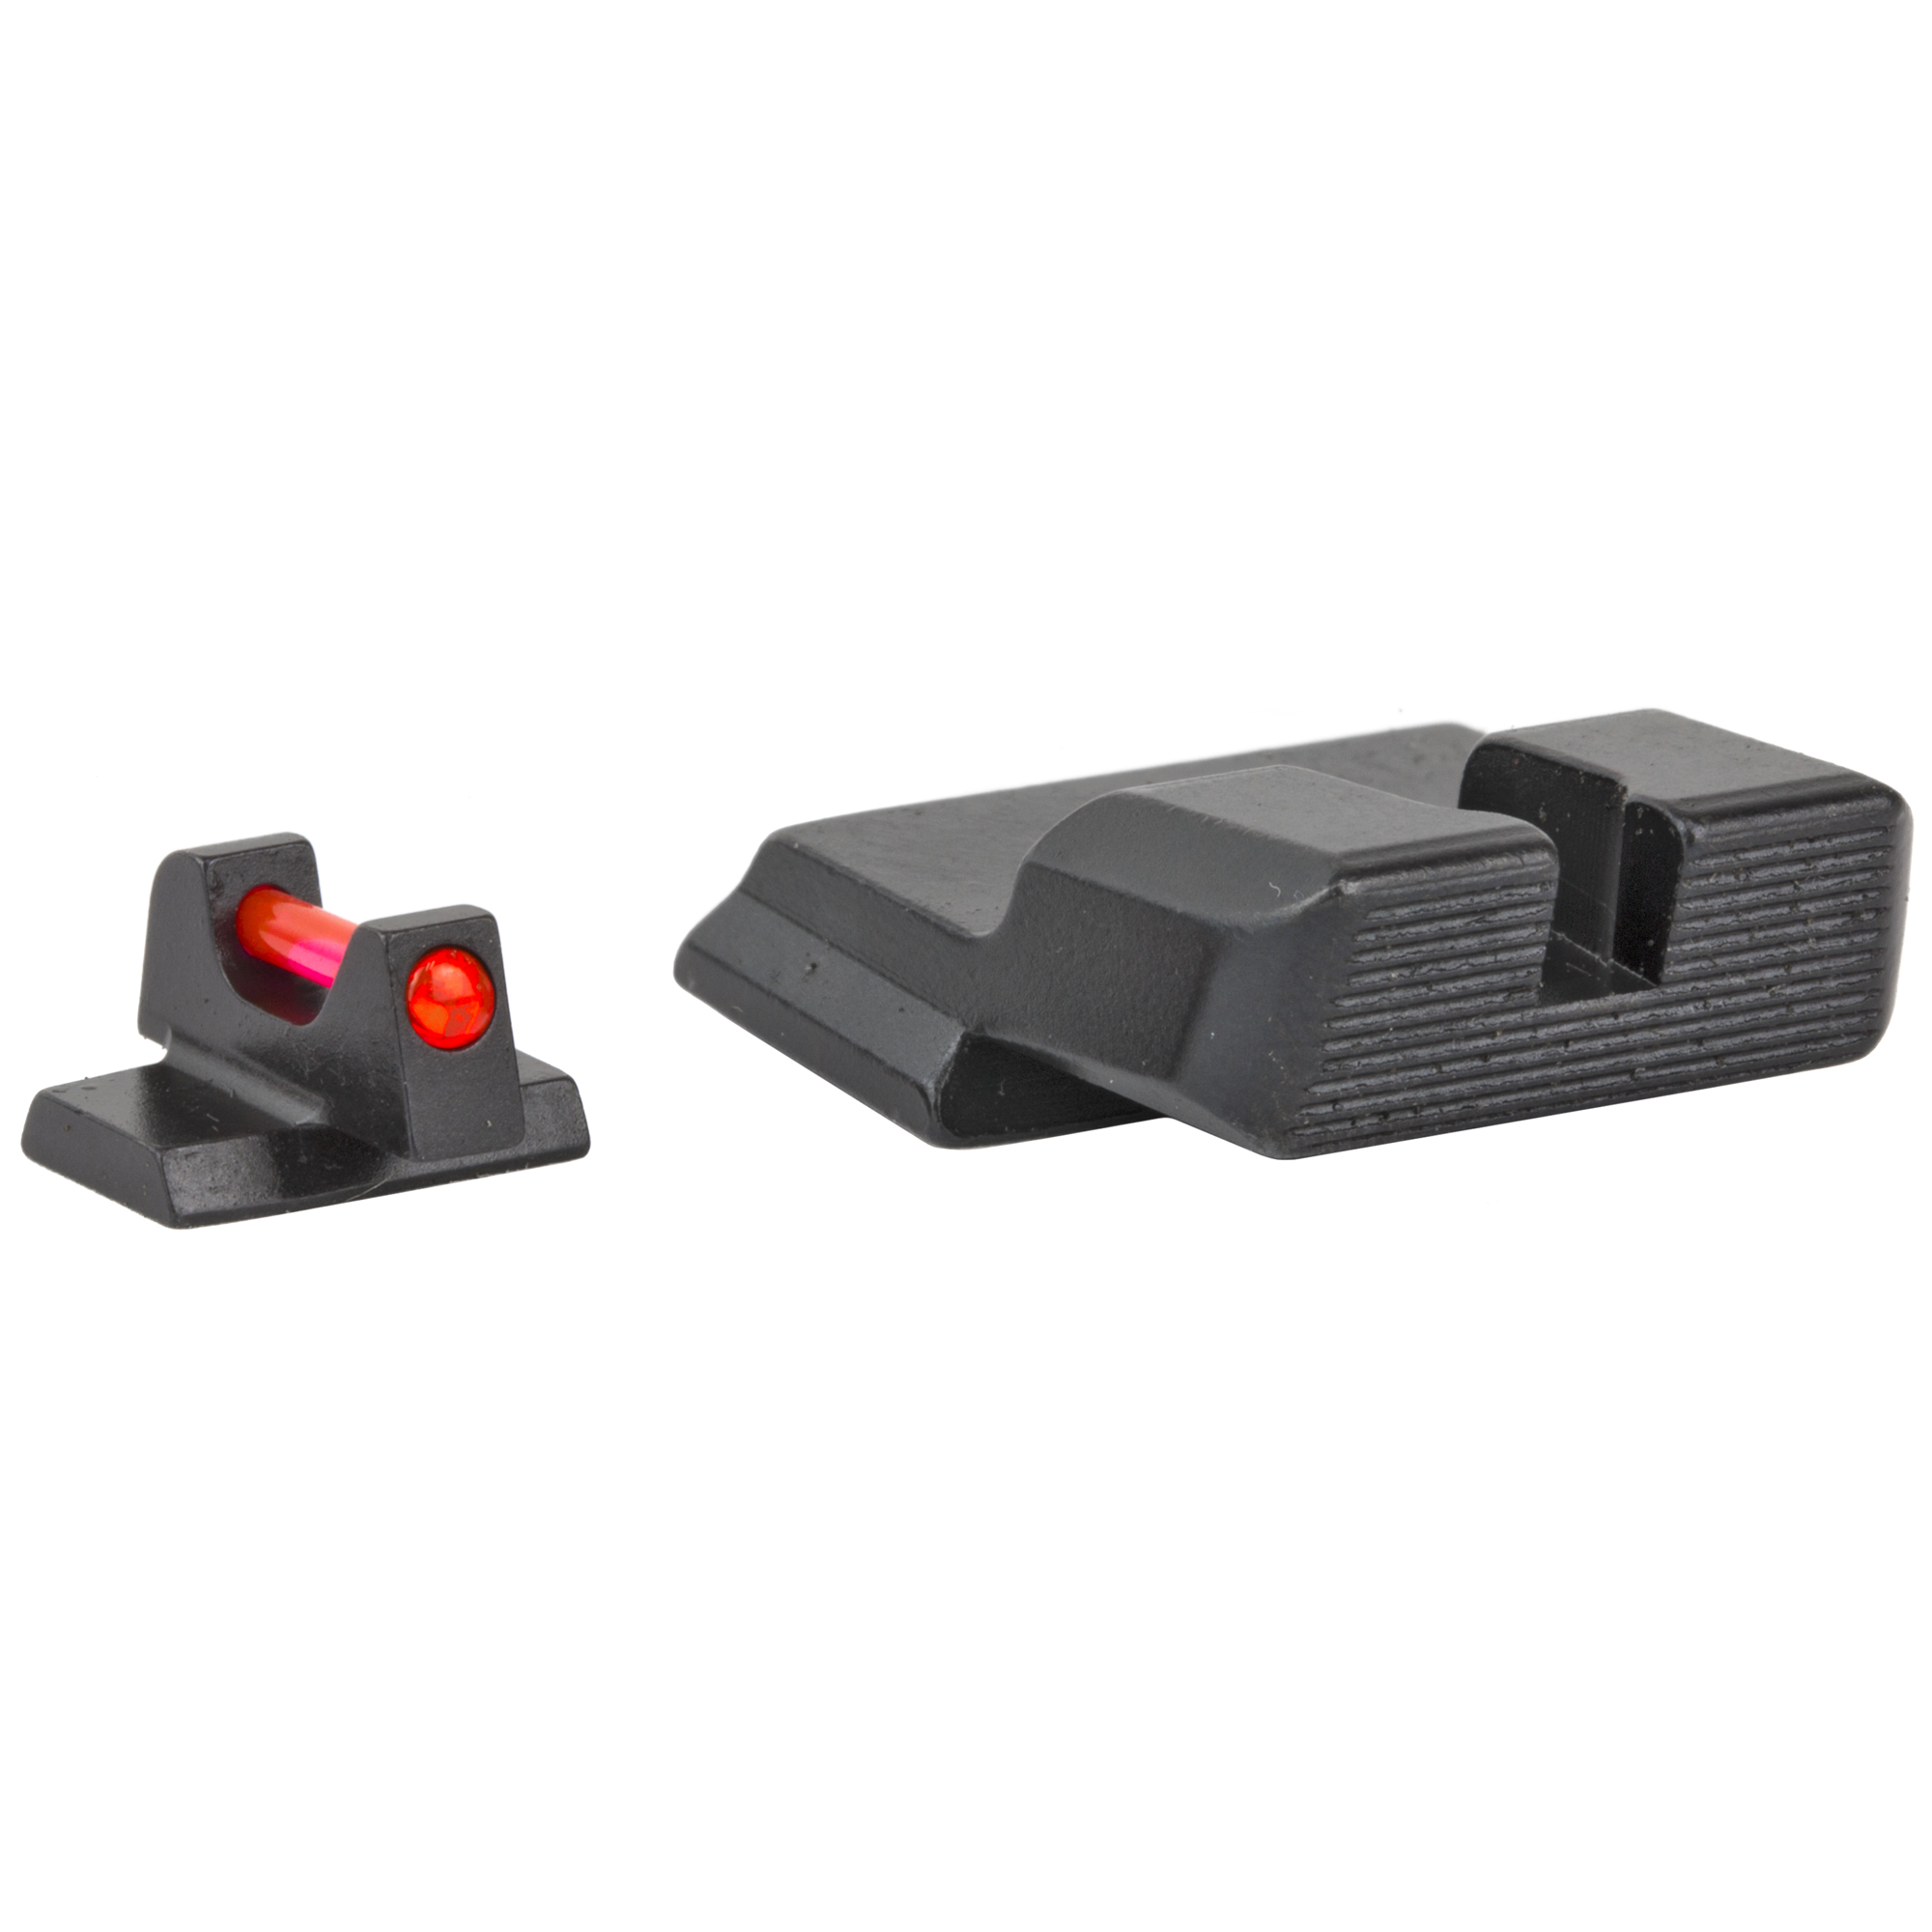 "Trijicon(R) Fiber Sight Set - for Smith & Wesson(R) Pistols: Behind Trijicon(R) Fiber Sights is years of engineering and manufacturing experience in producing the industry's leading night sight and fiber illuminated scopes and sights. Featuring similar fiber optic materials used in several Trijicon(R) fiber optic scopes and sights"" including the battle-proven ACOG(R)"" the Trijicon(R) Fiber Sights are purposely engineered to bring the absolute brightest aiming point while retaining strength and maintaining a refined sight picture. Whether carrying or competing"" these bright"" thin sights create the perfect aiming point for fast"" accurate rounds on target."